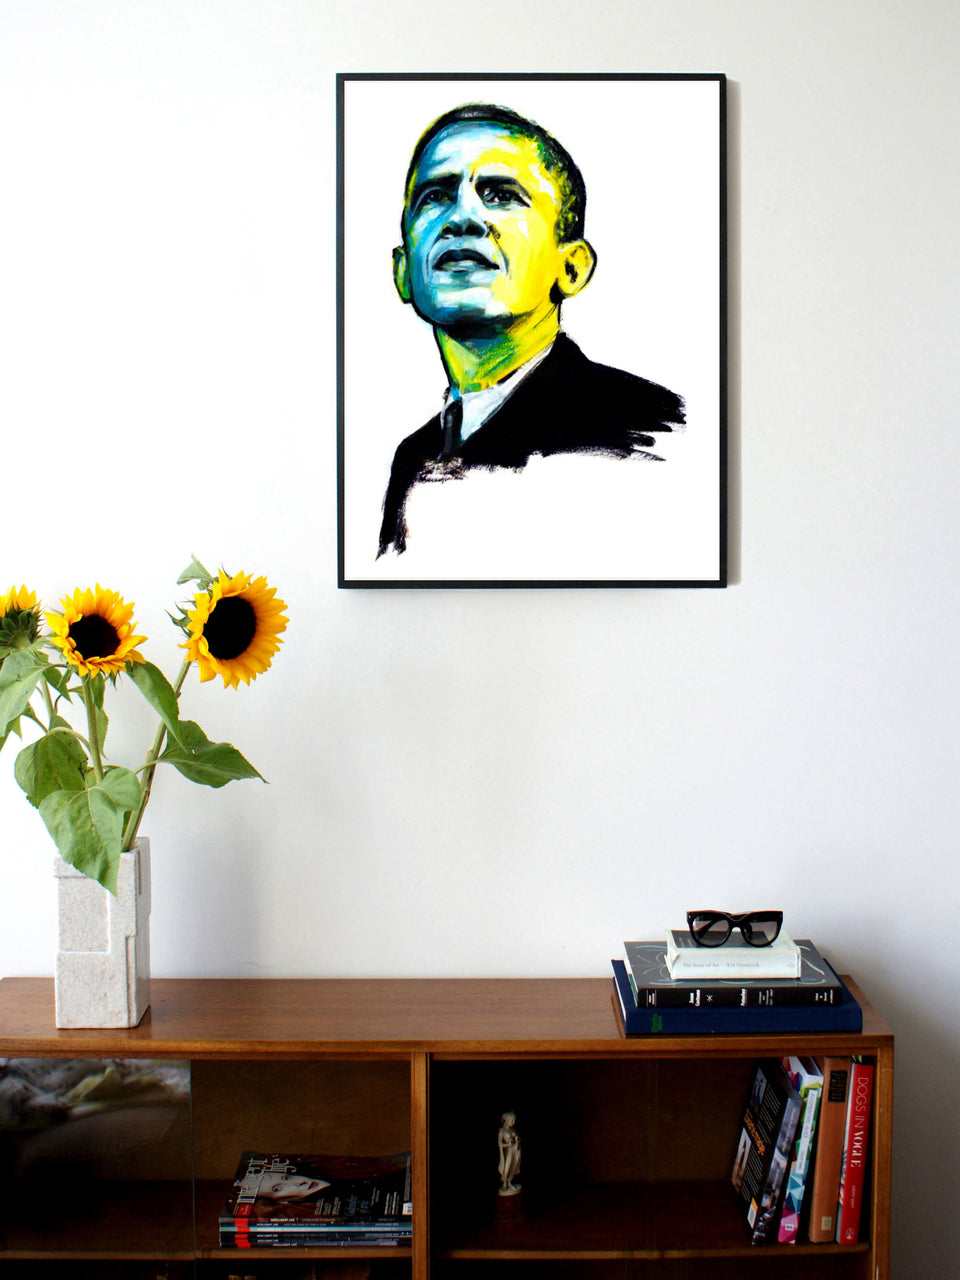 Fashion illustration print of Obama by Sjoukje Bierma - President Barack Obama - 60 x 80 cm framed